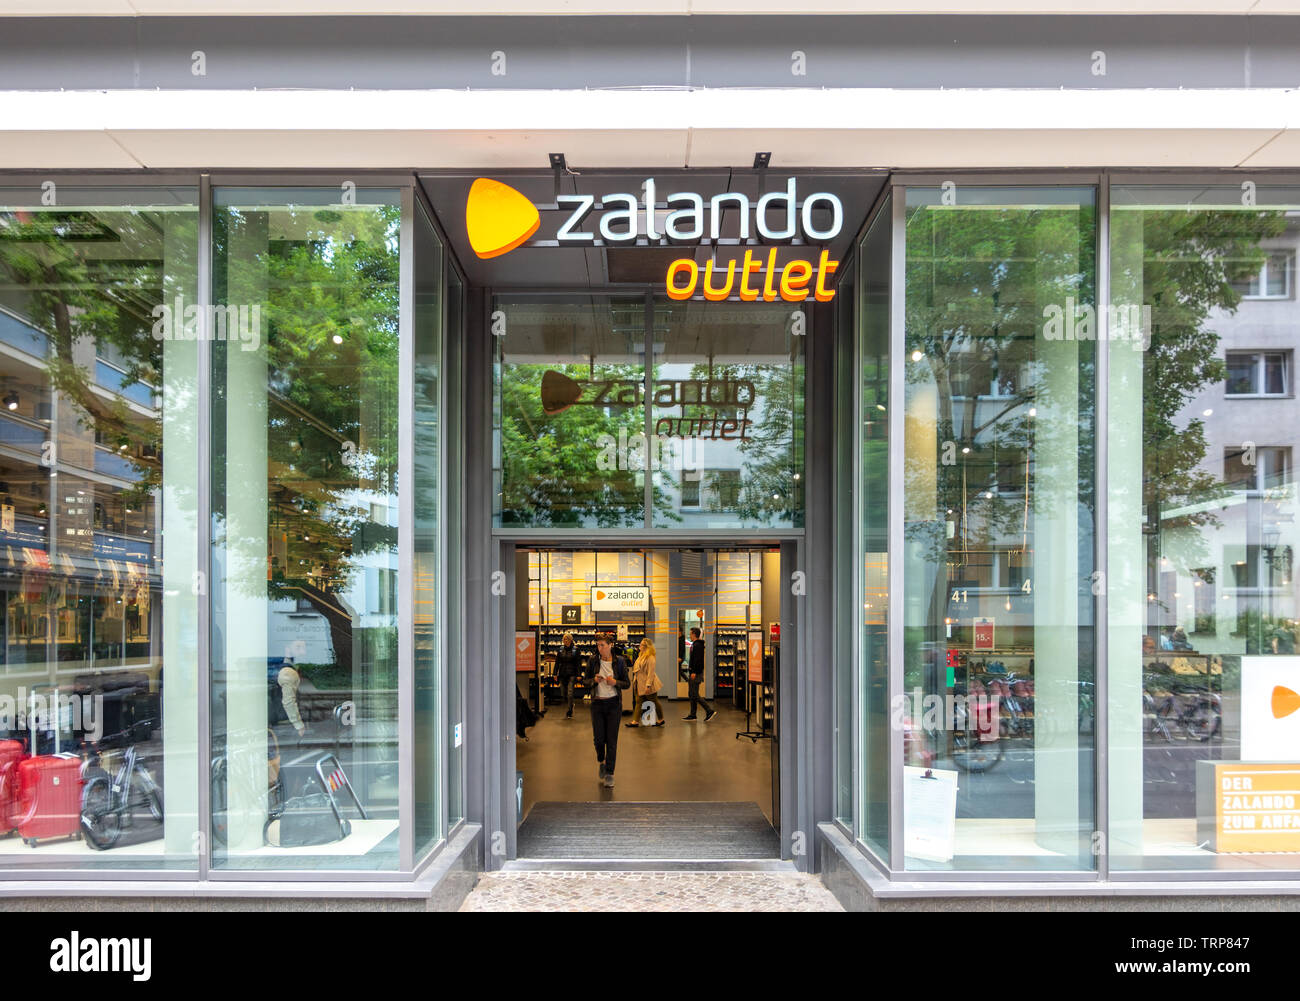 Zalando Outlet store in Leipzig Germany - Stock Image